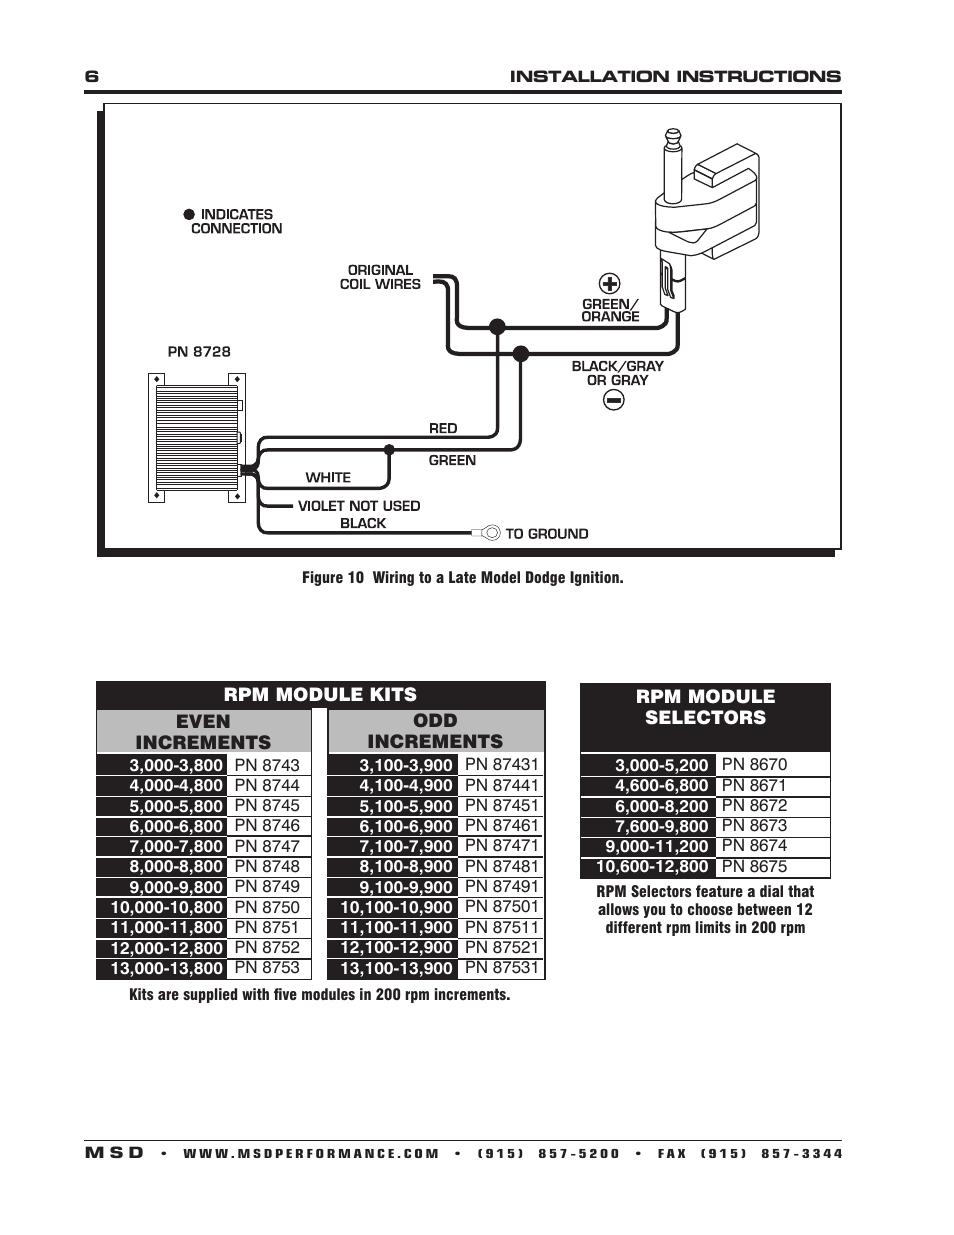 msd 8728 soft touch rev control installation user manual | page 6 / 8  manuals directory